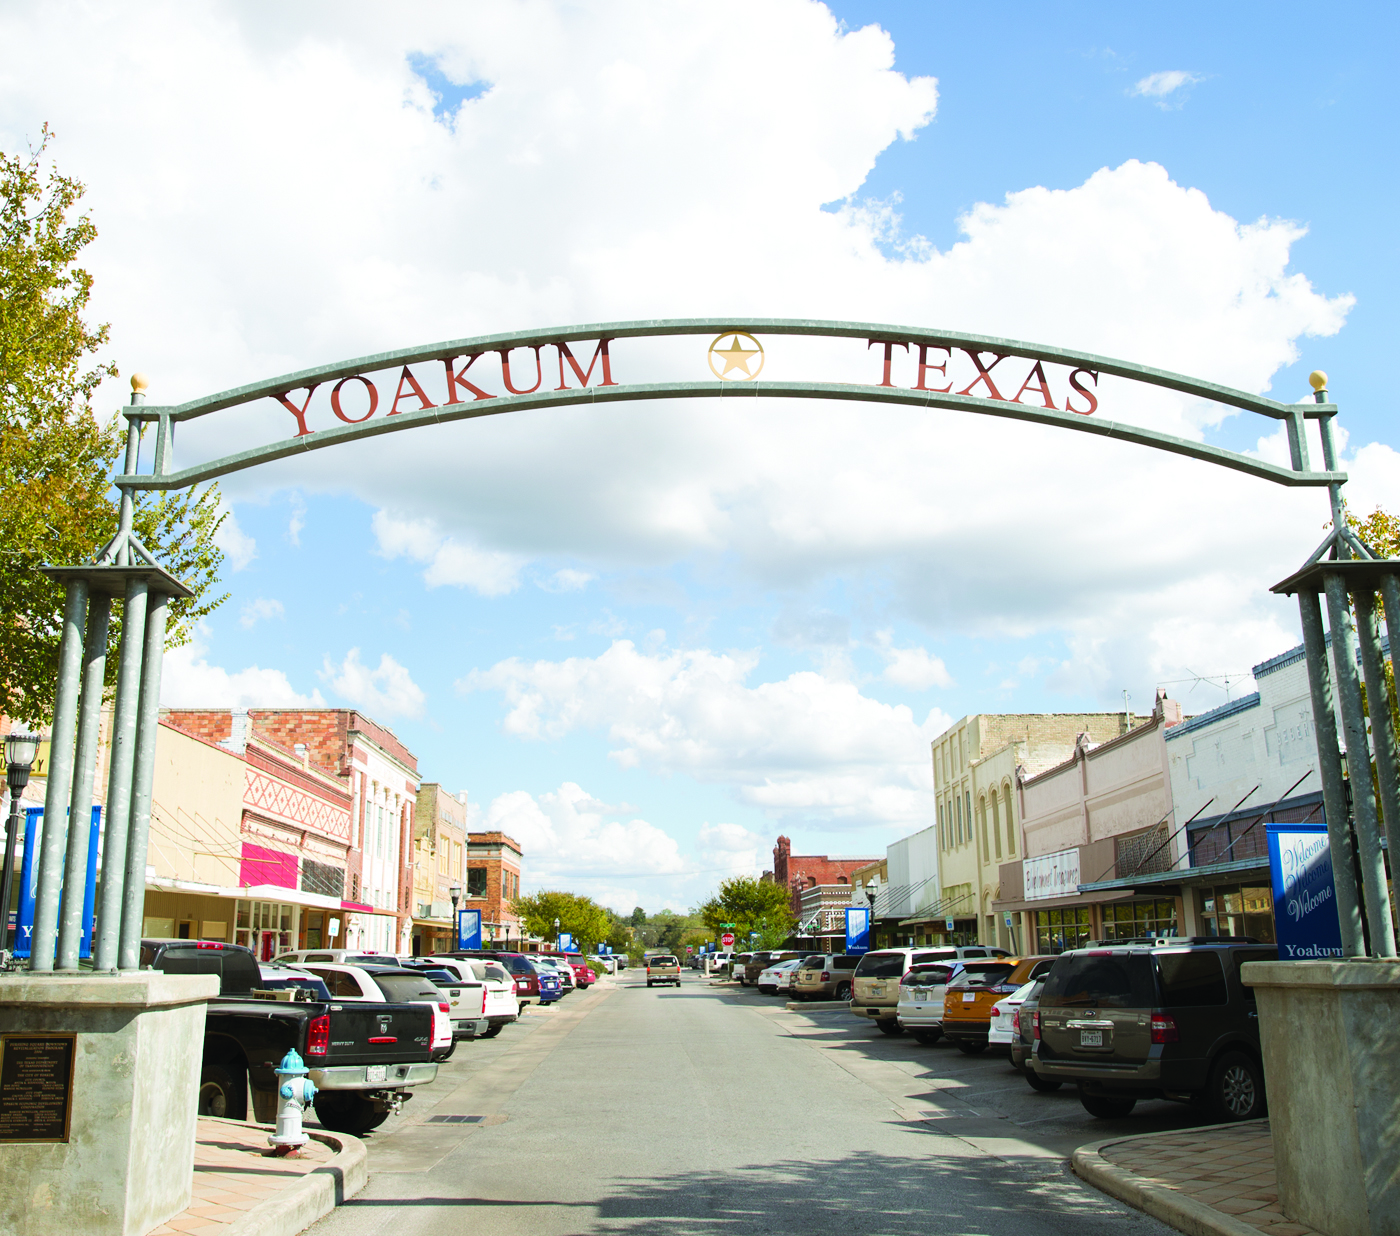 places to visit in yoakum, texas